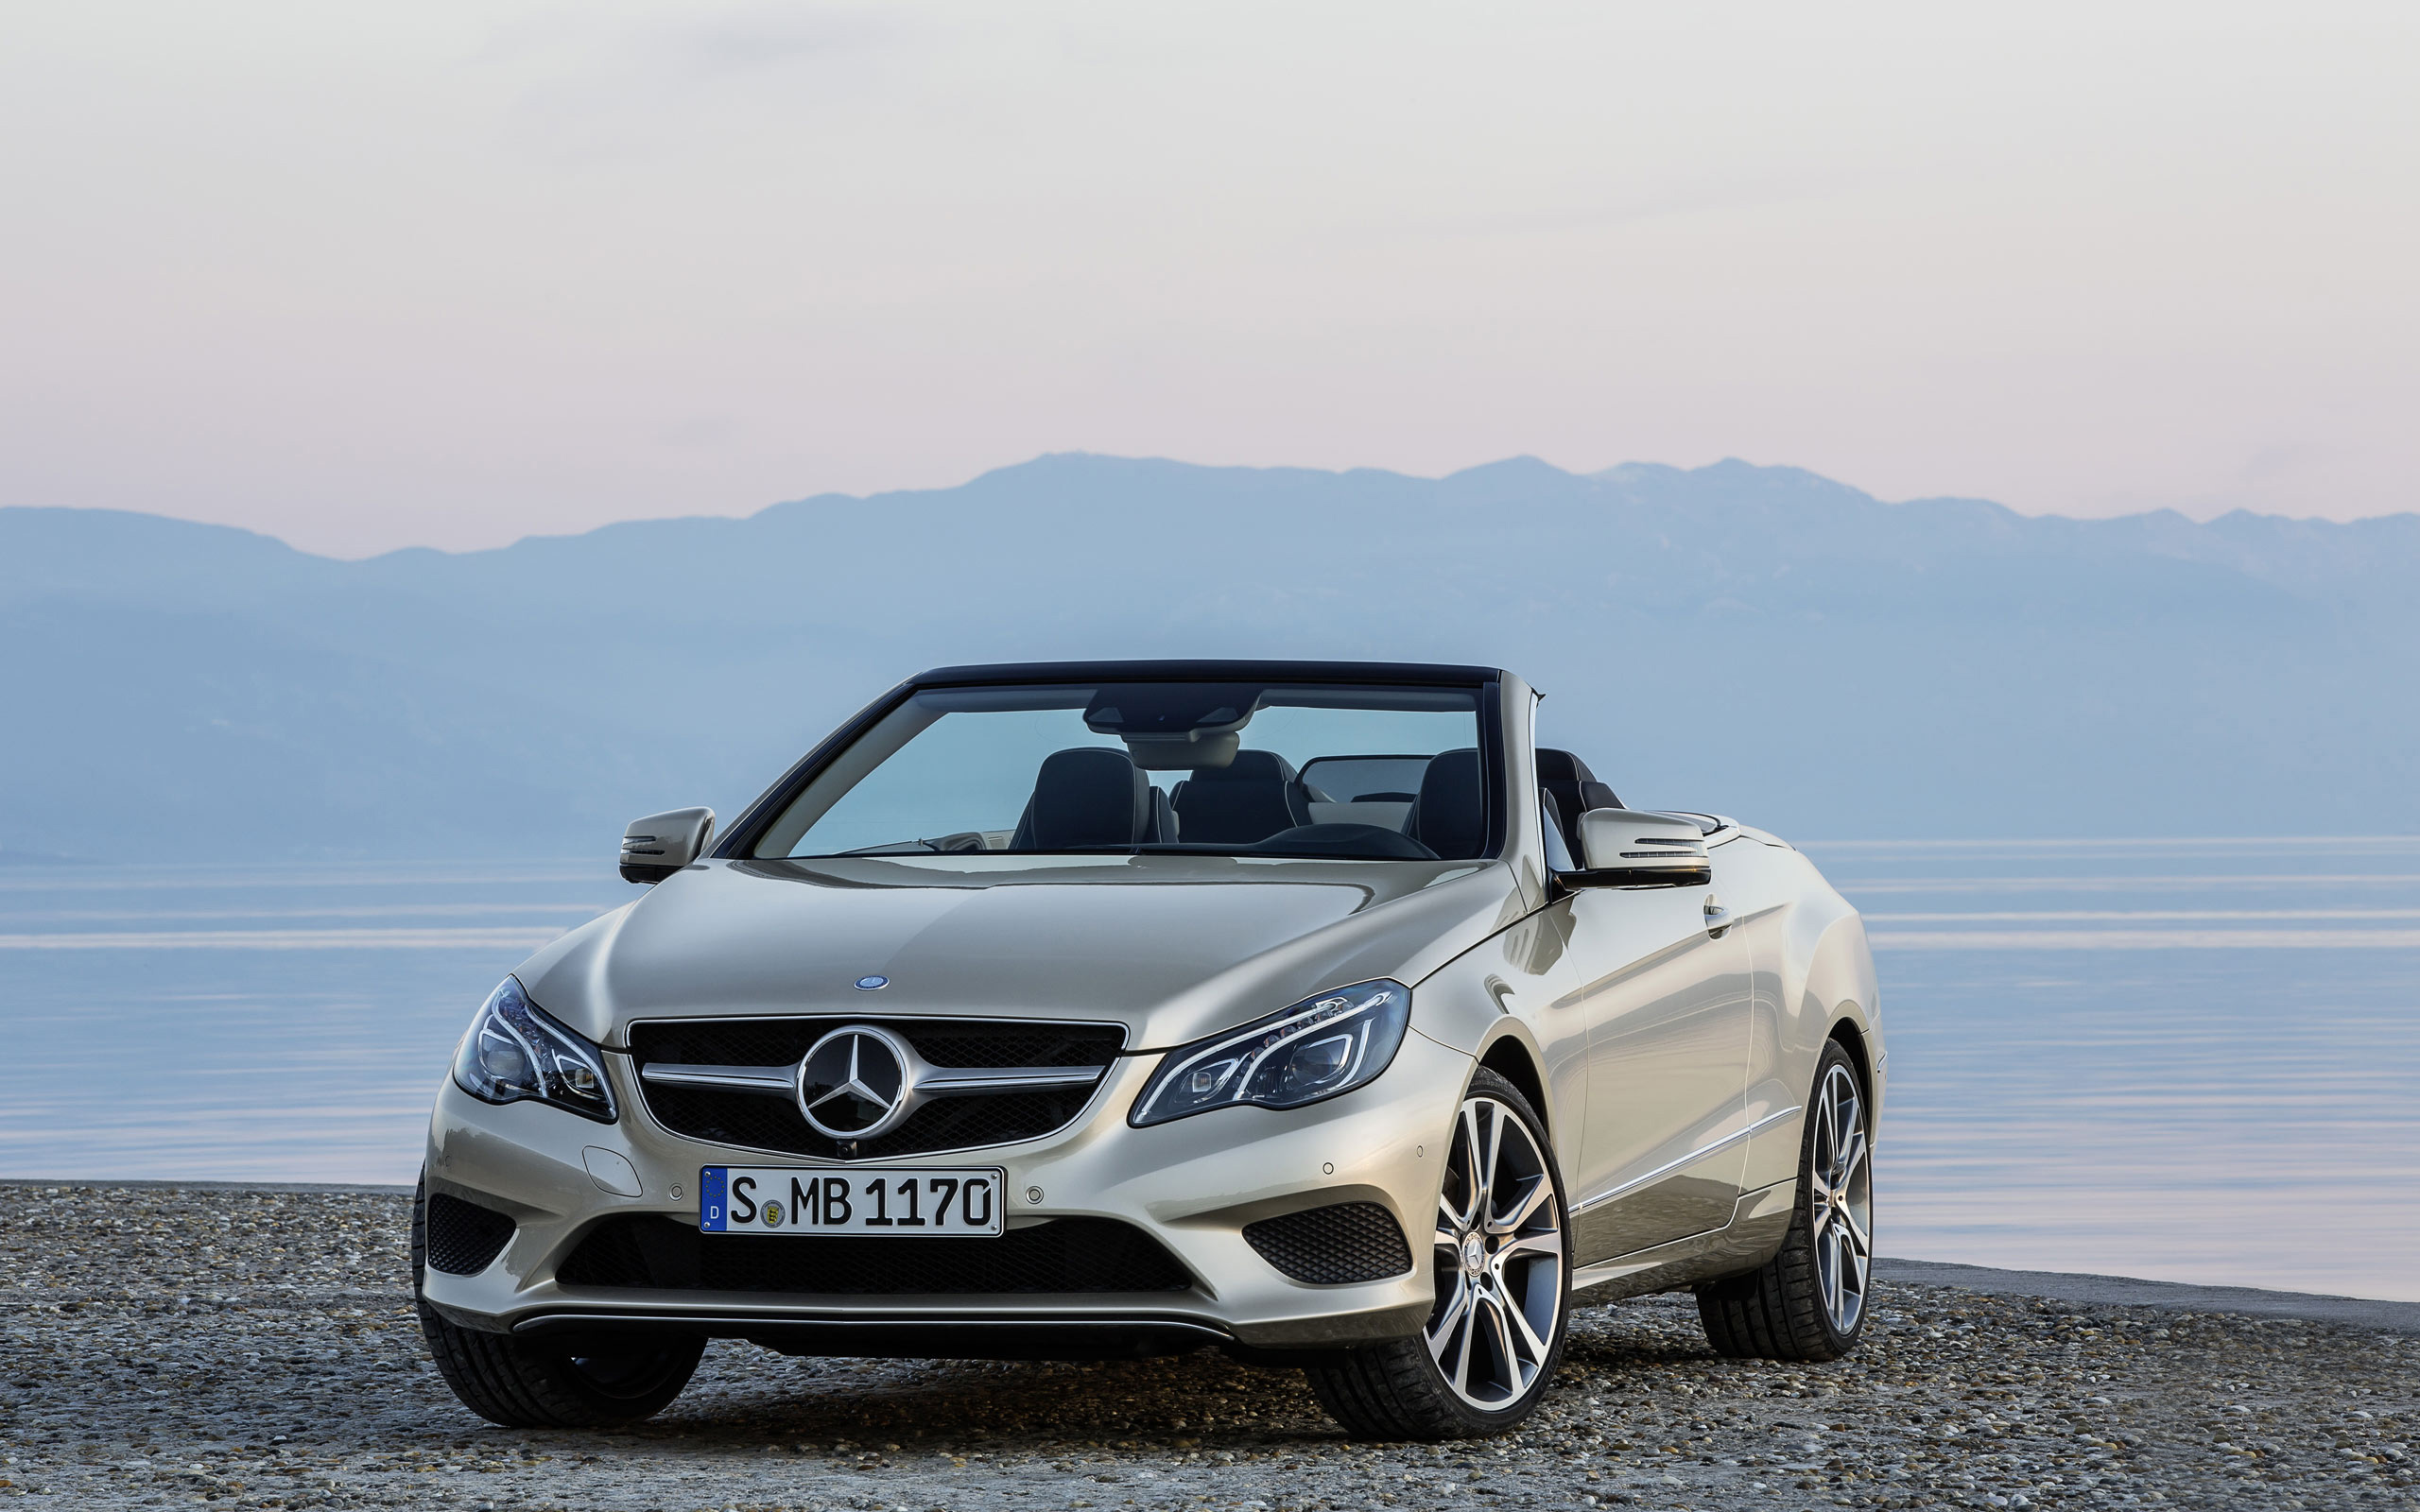 2014 mercedes benz e class cabriolet wallpaper hd car for Mercedes benz e350 cabriolet